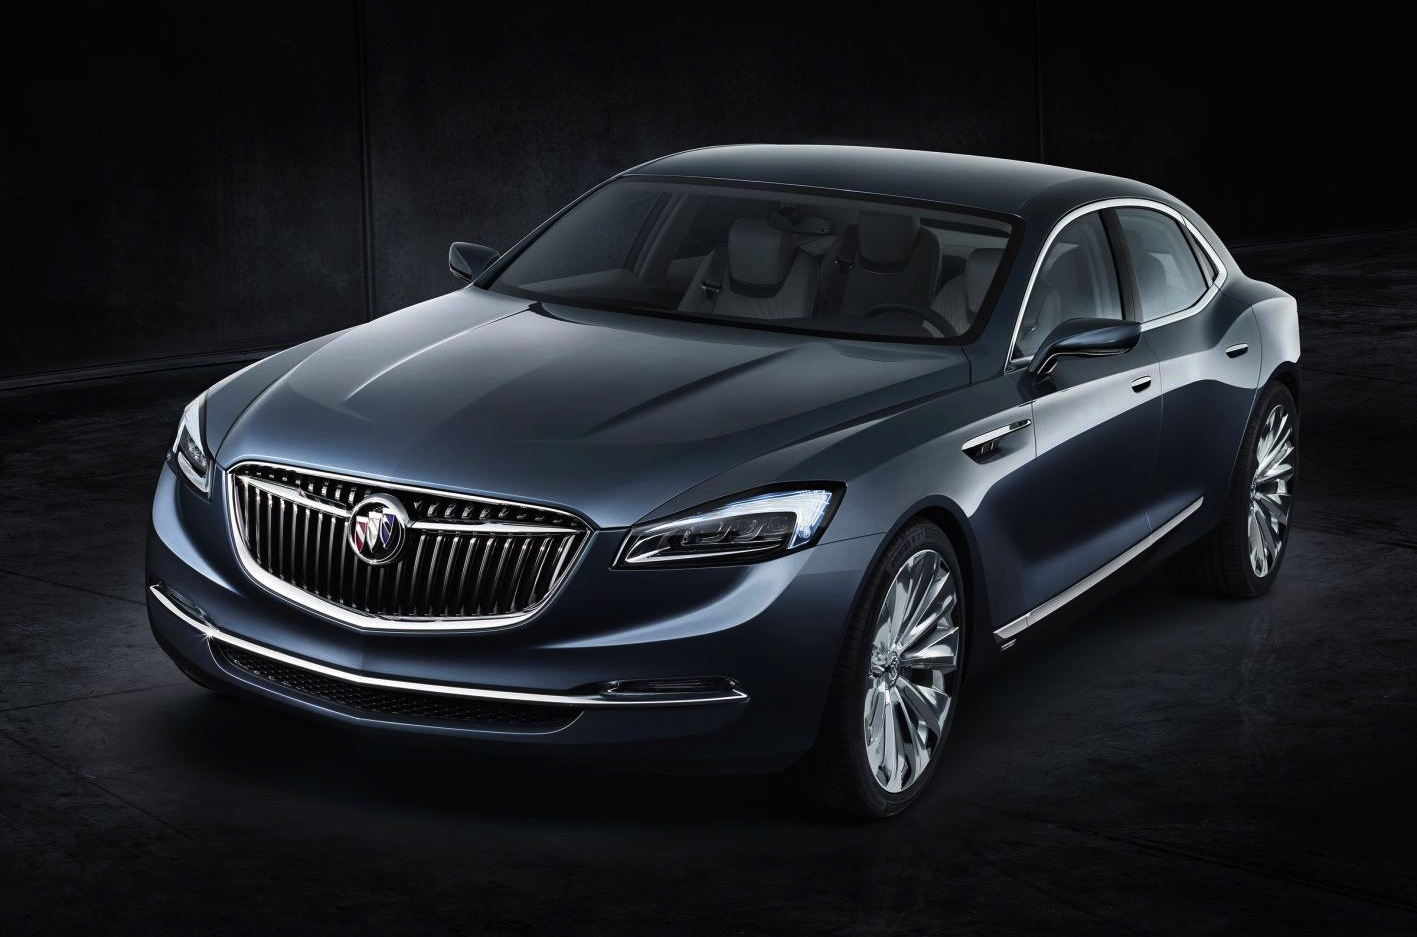 Buick Avenir concept revealed, potential post-2017 Commodore? | PerformanceDrive